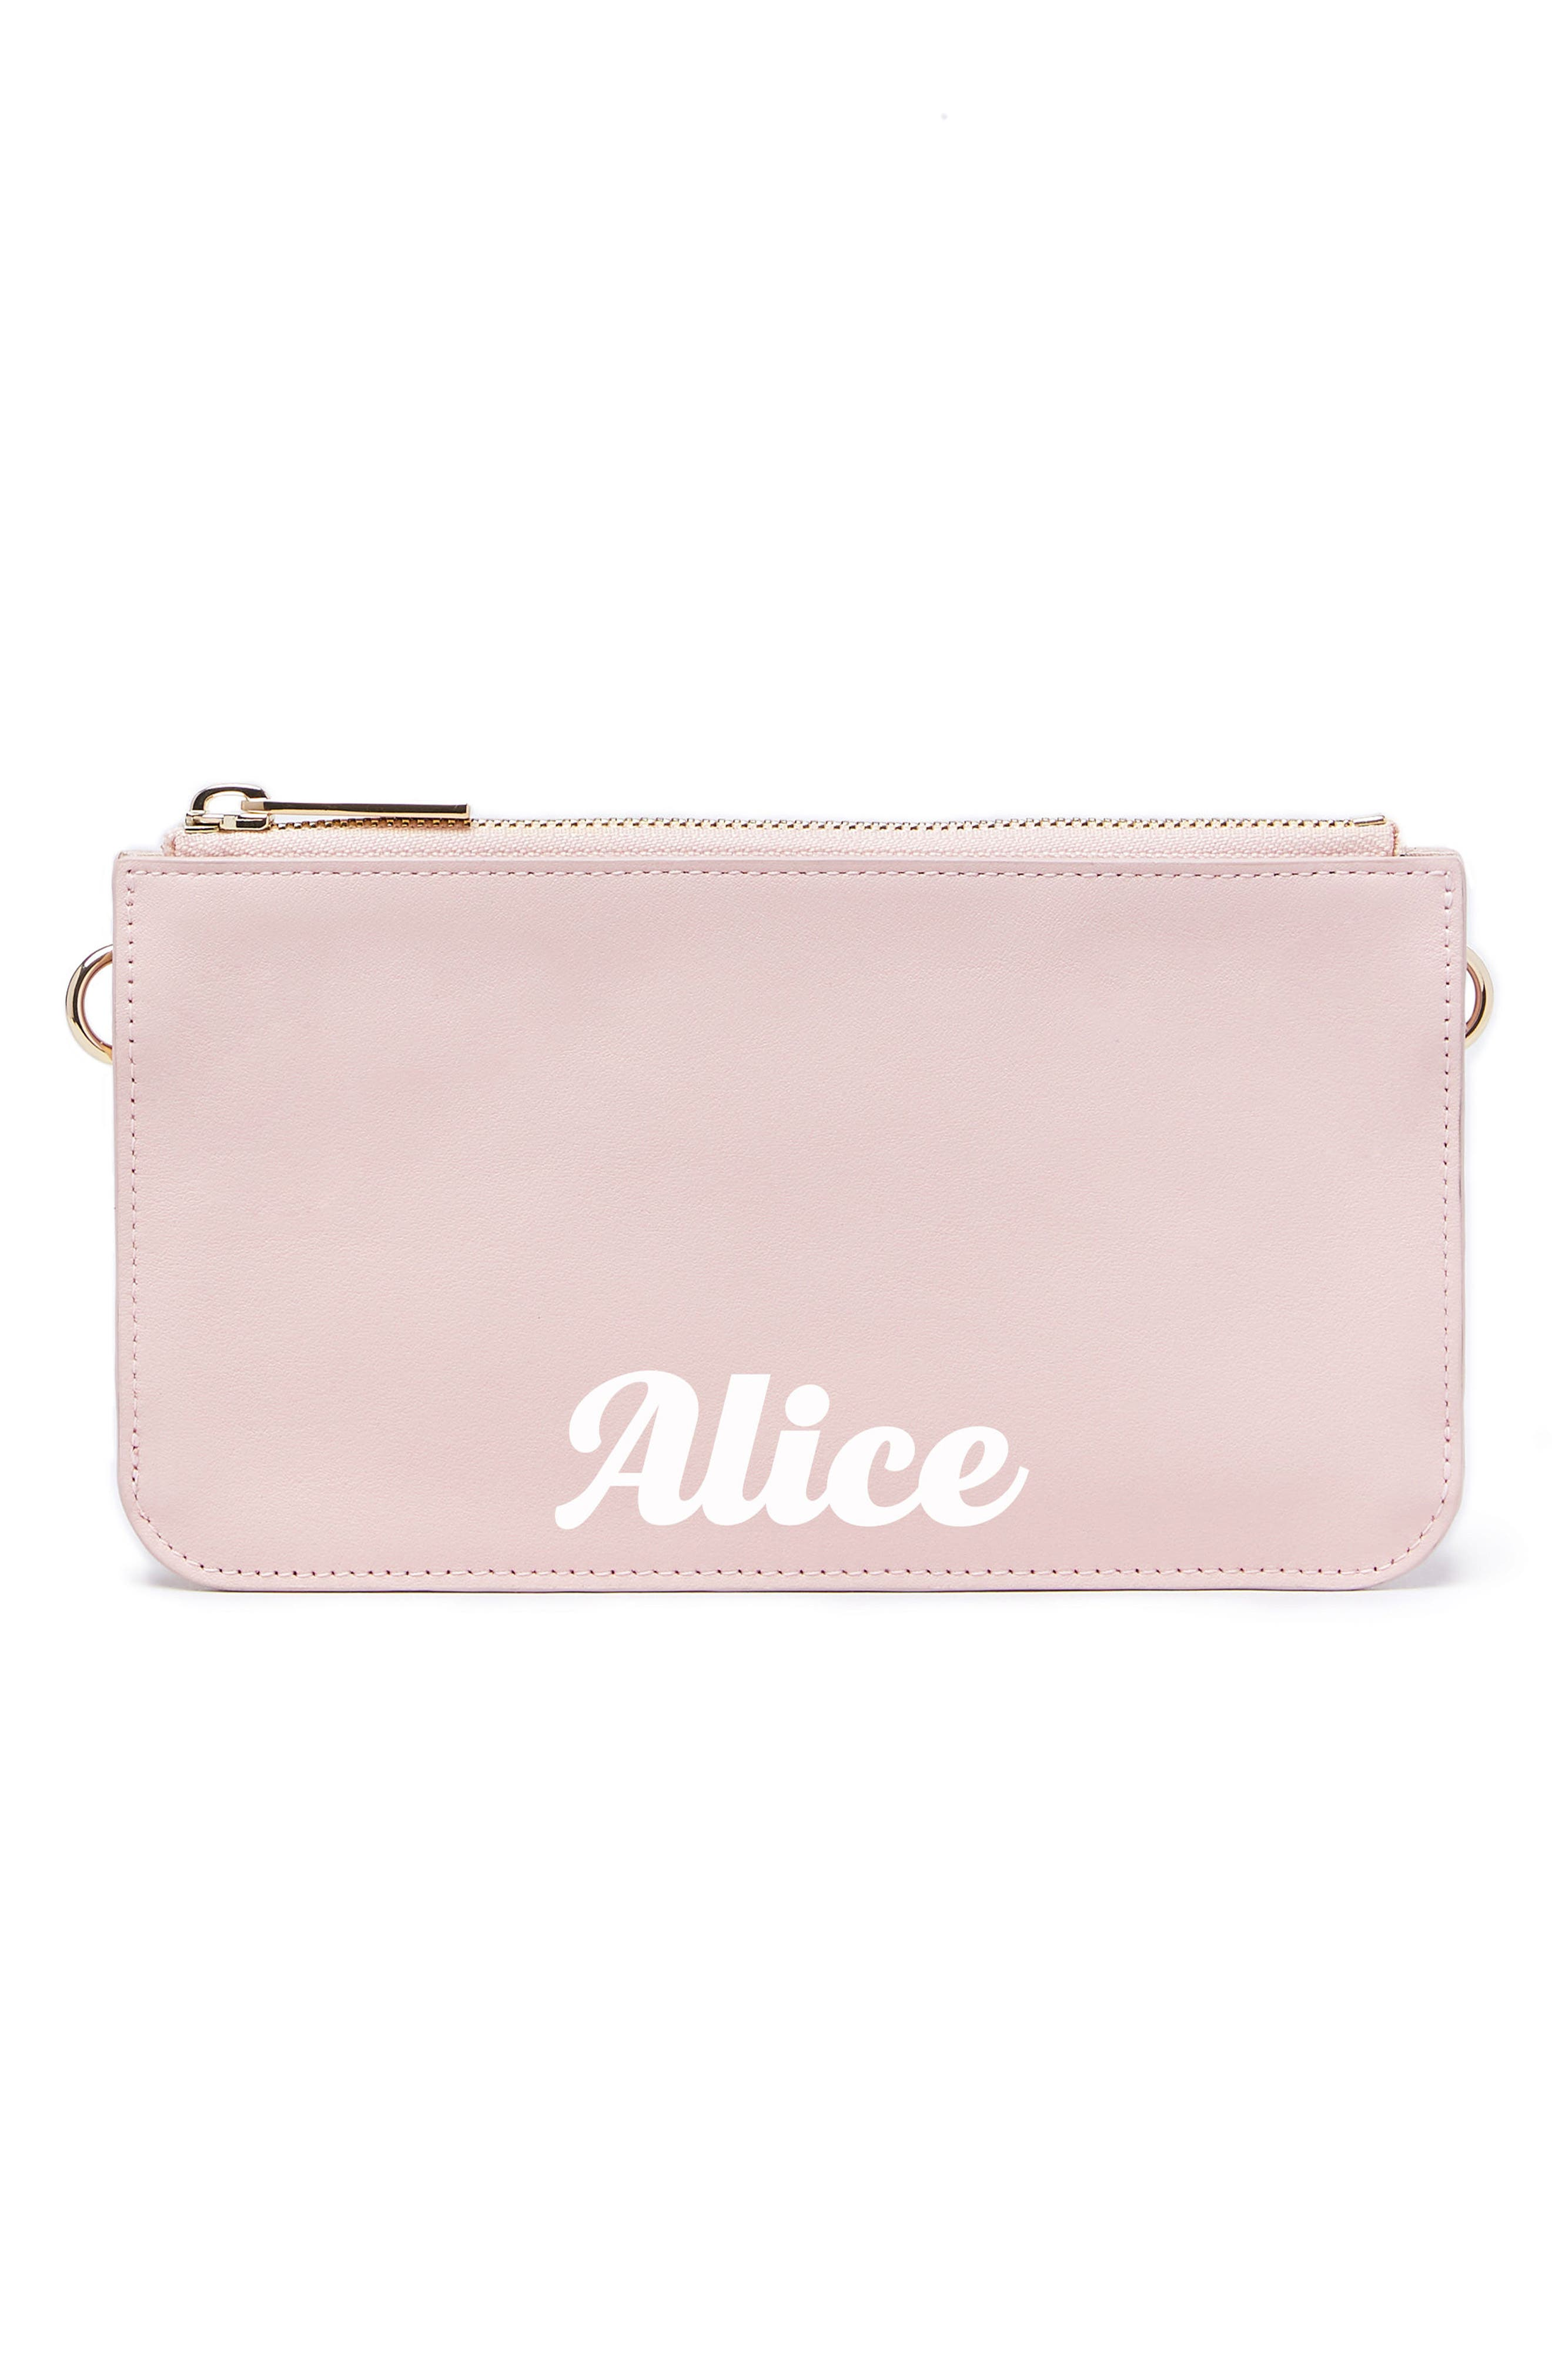 Personalized Leather Zip Pouch,                             Main thumbnail 1, color,                             Cotton Candy